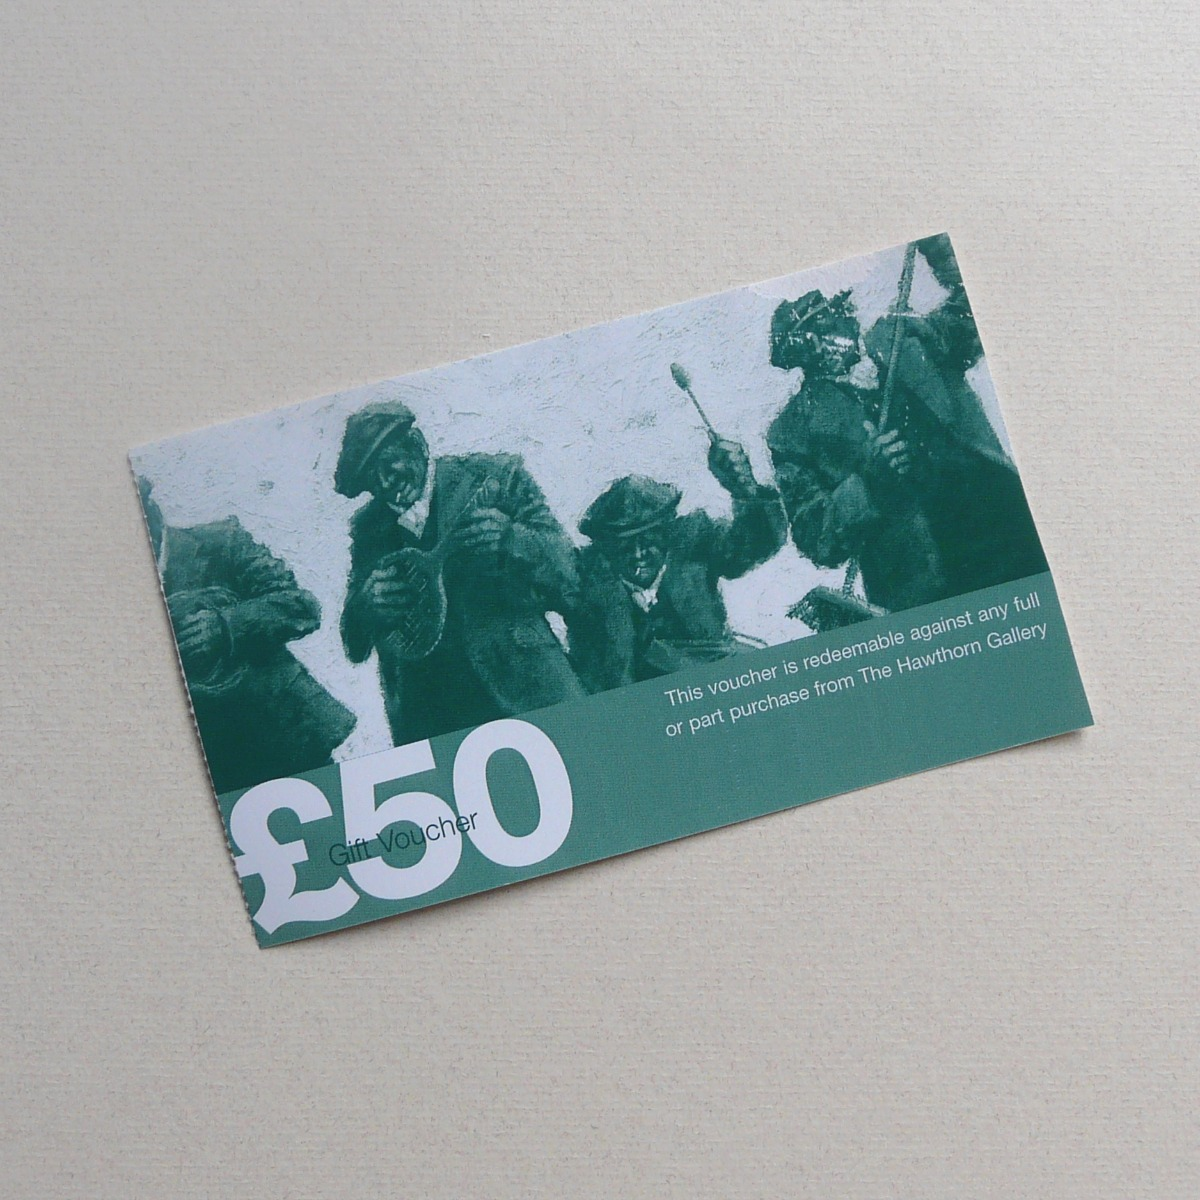 £50 Gift Voucher by The Hawthorn Gallery, Voucher | Gift